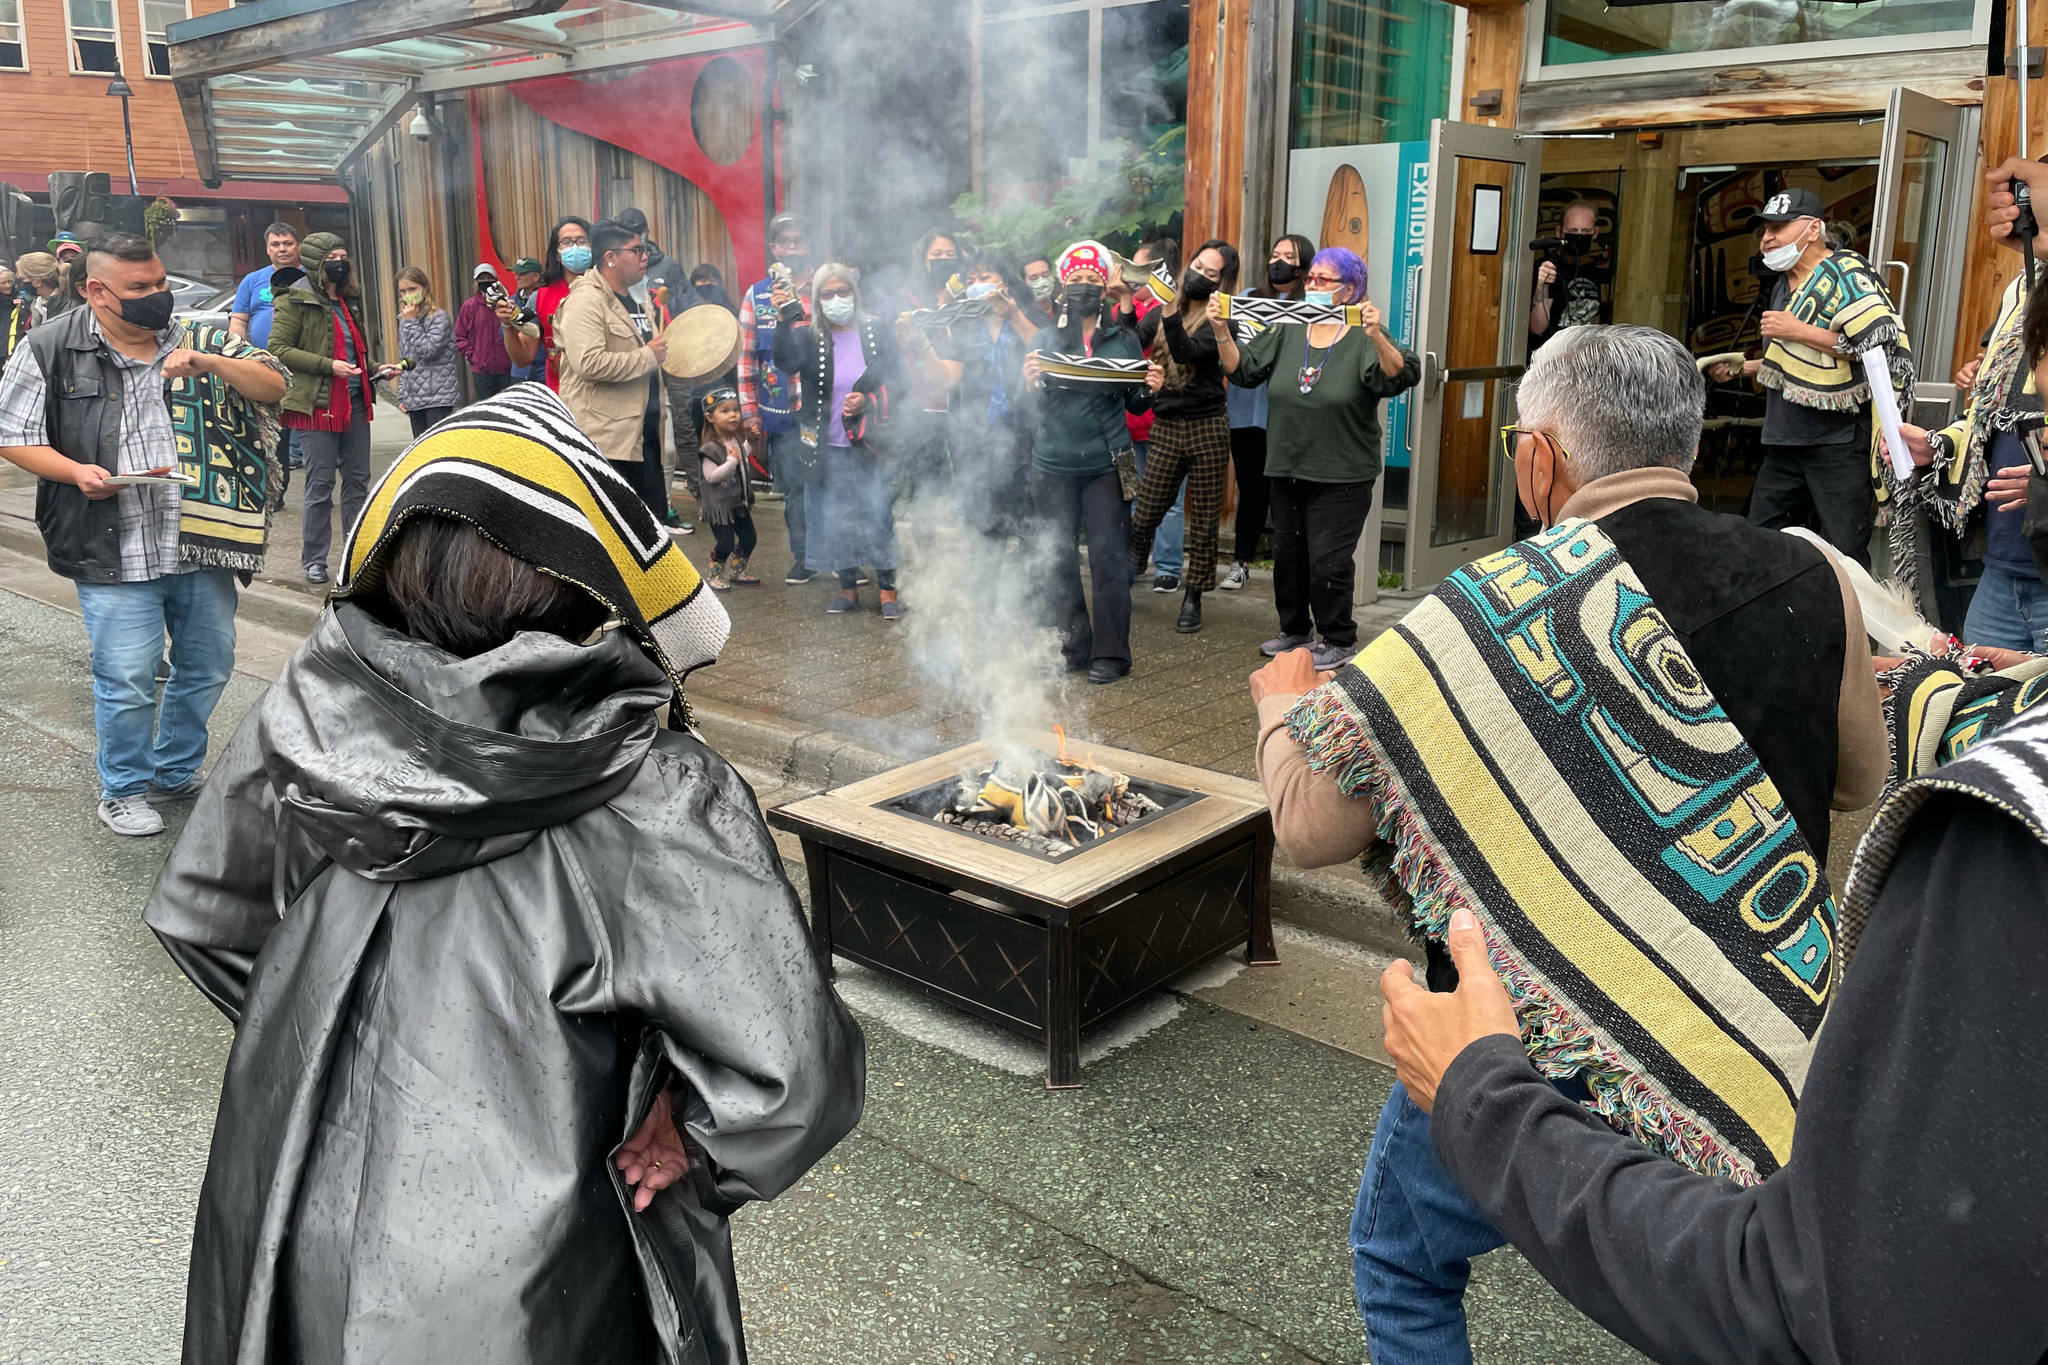 Michael S. Lockett / Juneau Empire  Participants burn an example of a commercial garment that led to a now-settled intellectual property lawsuit in a ceremony commemorating the settlement with the fashion company on Friday, Aug. 13, 2021.